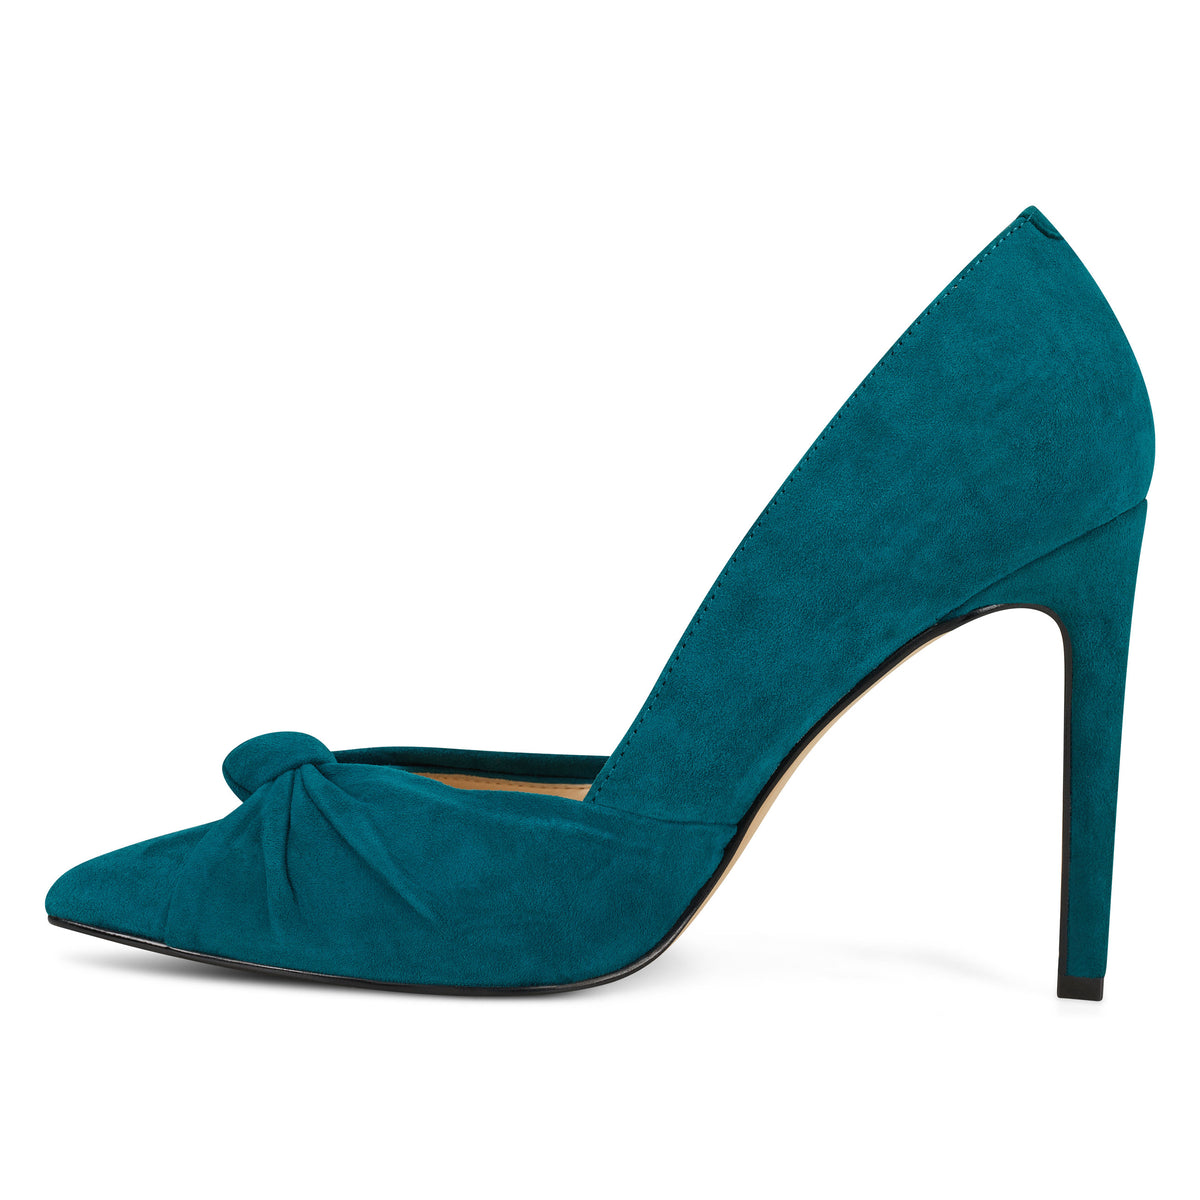 true-dress-pumps-in-teal-suede